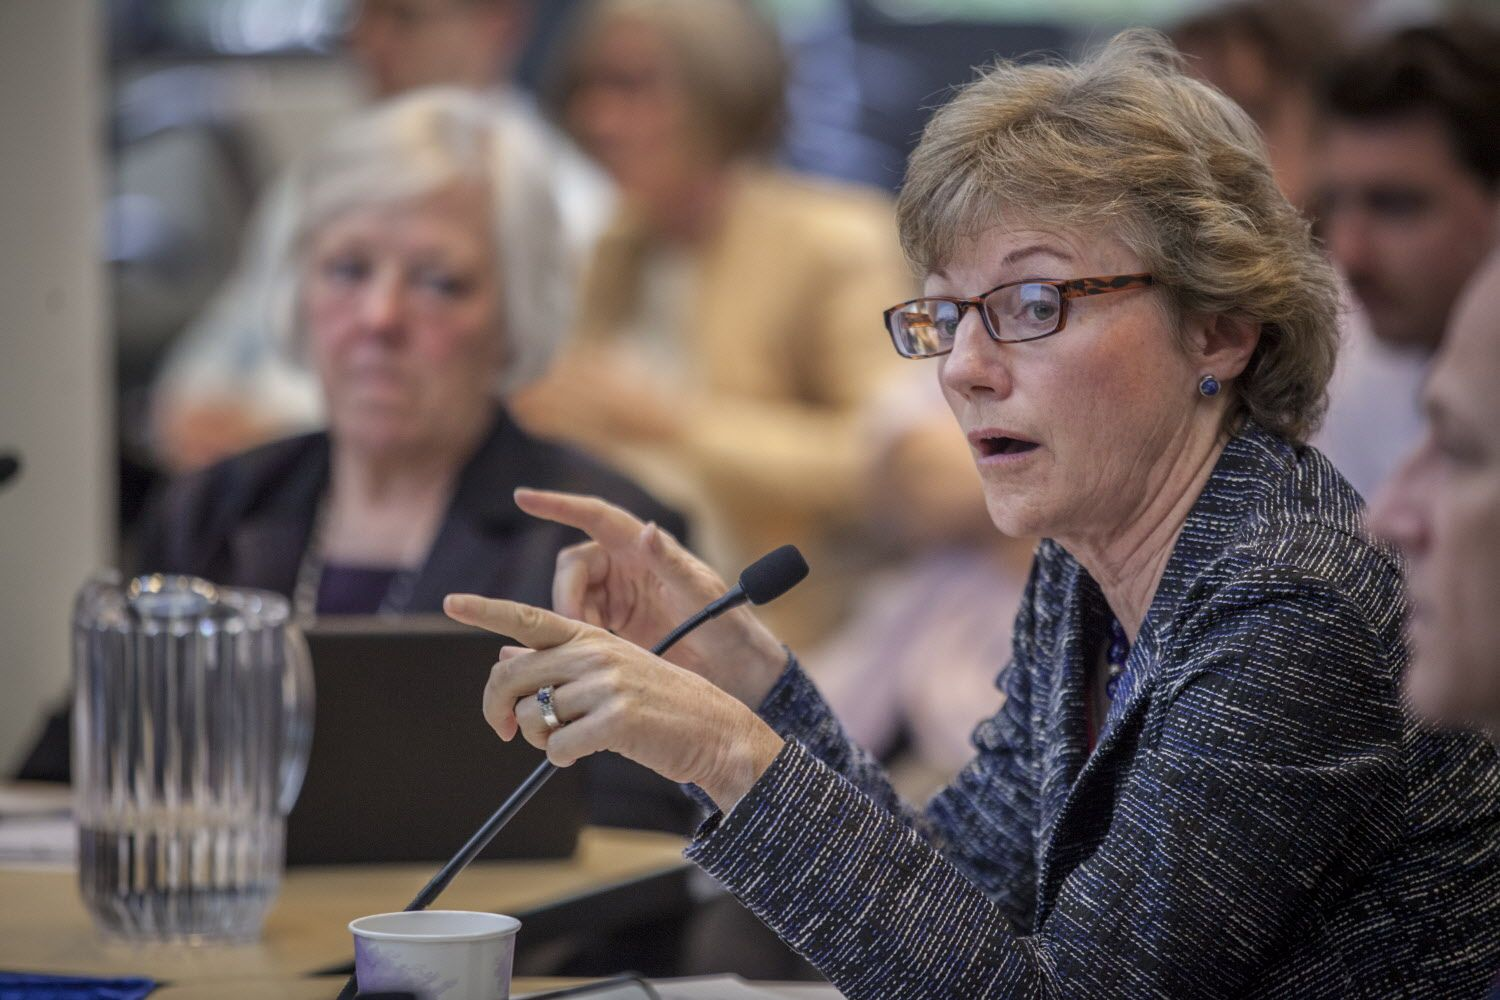 Walnut Creek City Council member Cindy Silva during the public comment and official discussion of locally implementing Prop 64 - marijuana legalization Tuesday 16  May 2017 at Walnut Creek City Hall in Walnut Creek, CA. (Peter DaSilva Special to the Chronicle)